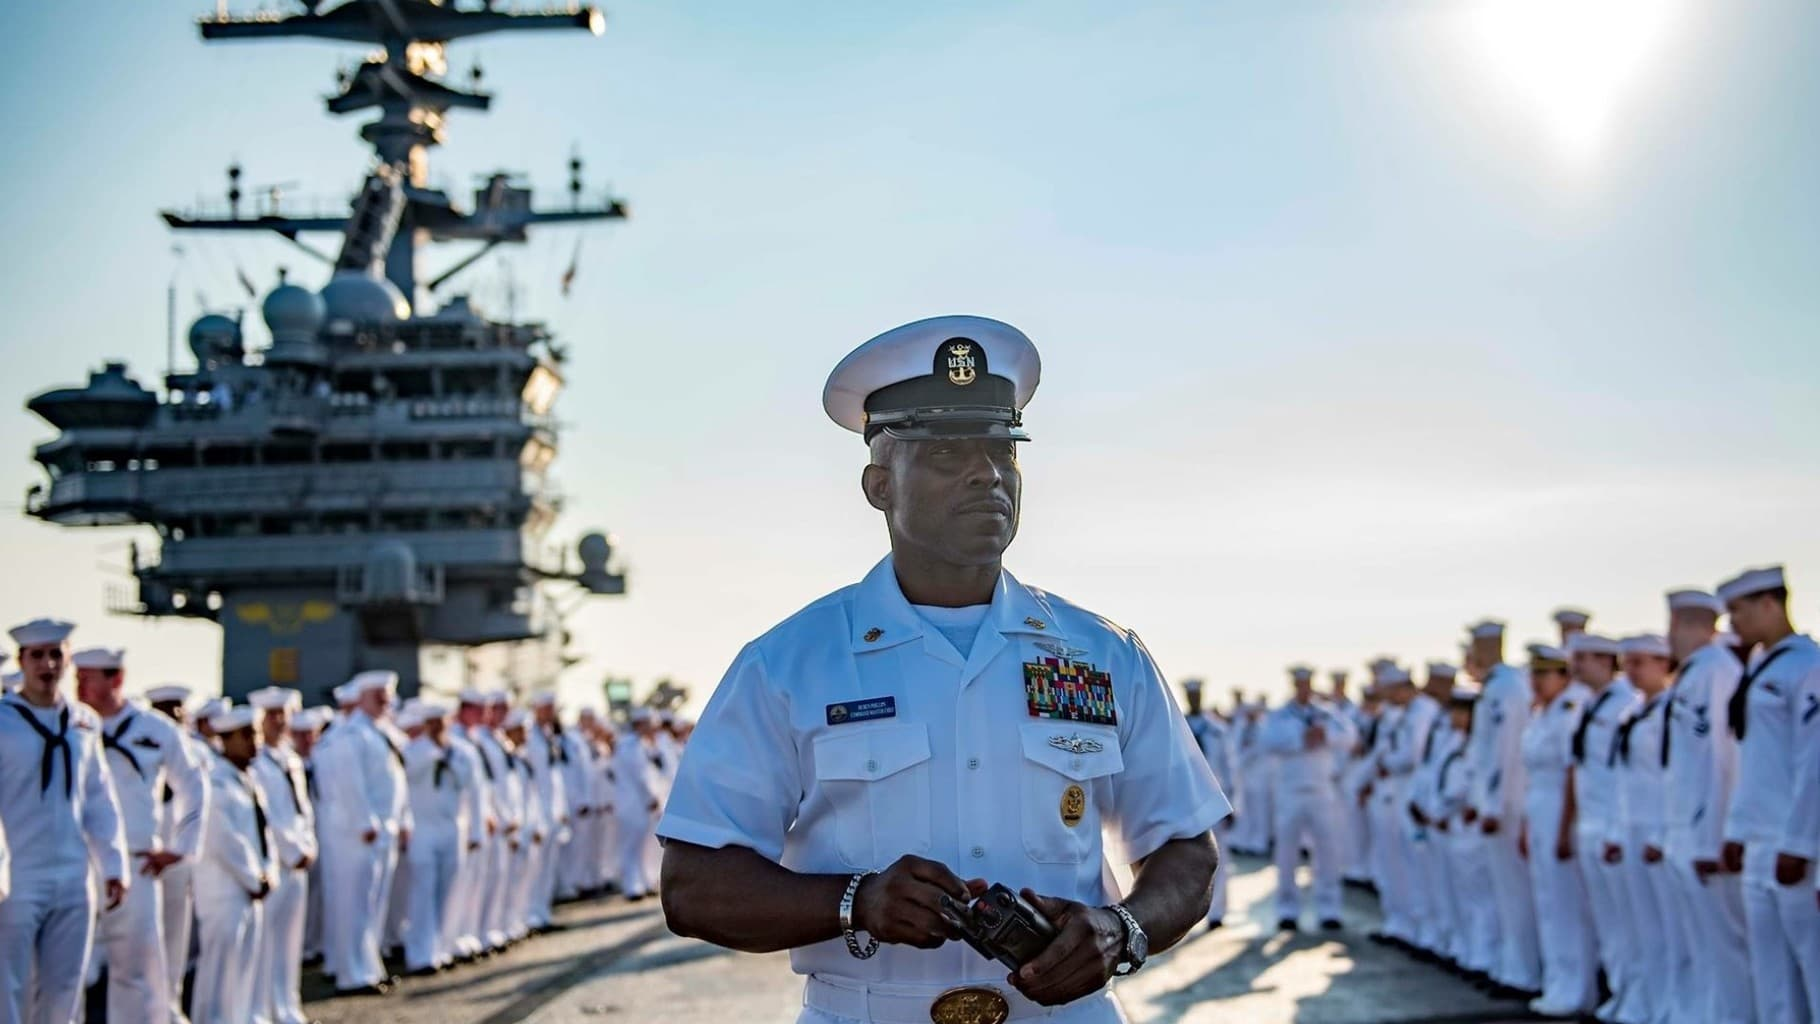 Are military officers rich? Average net worth